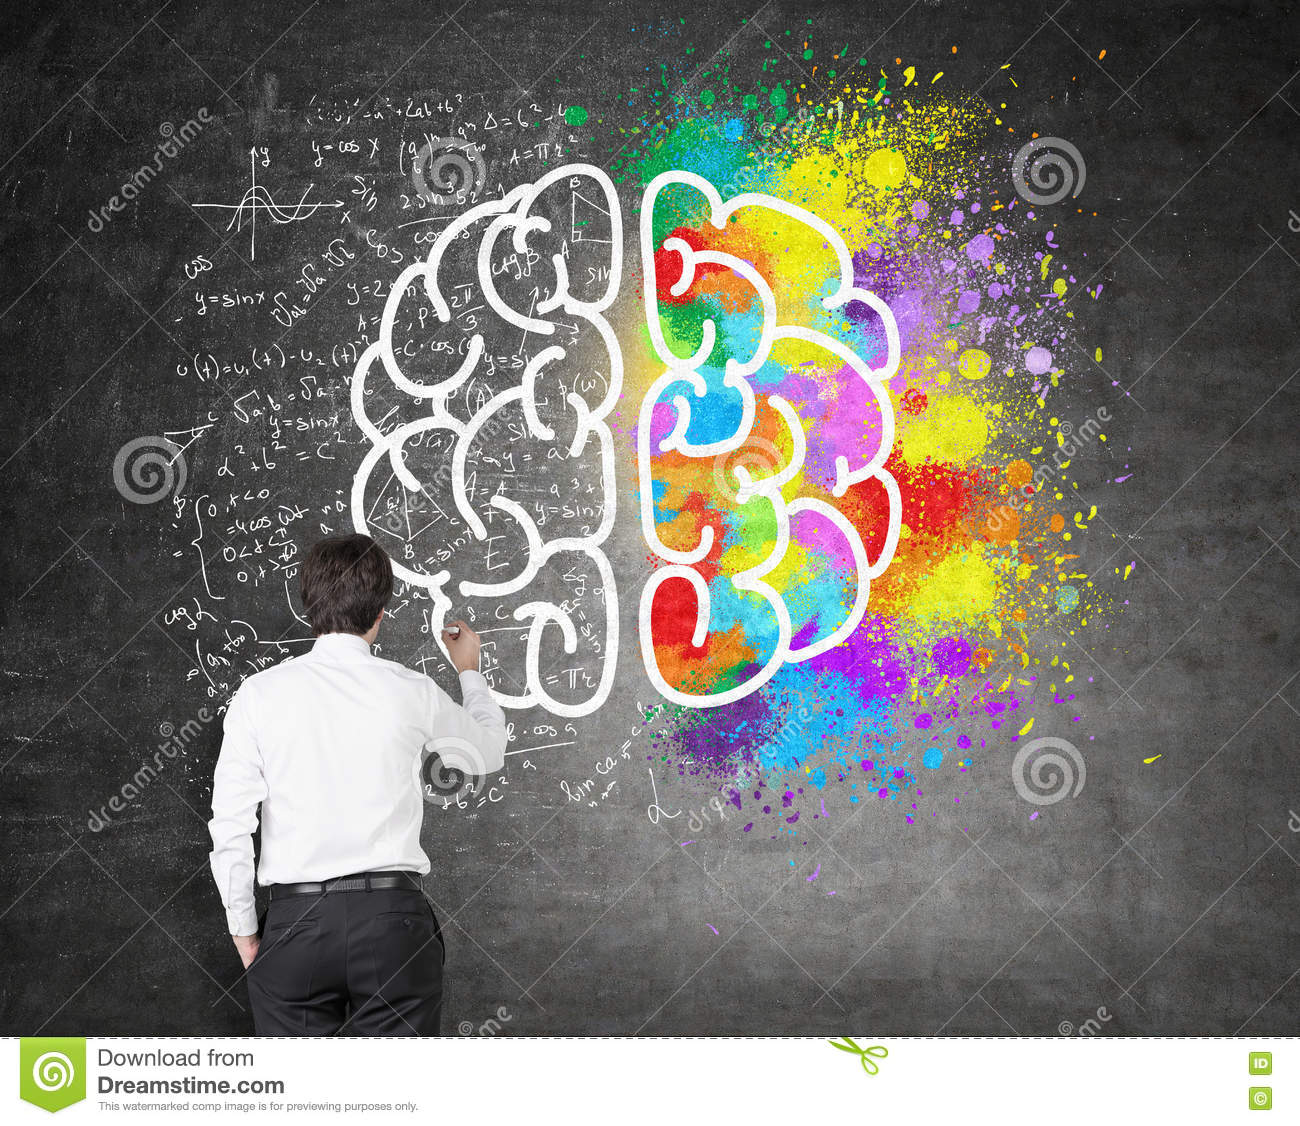 brain hemispheres sketch stock photos images pictures 79 images creative and analytical thinking royalty stock images